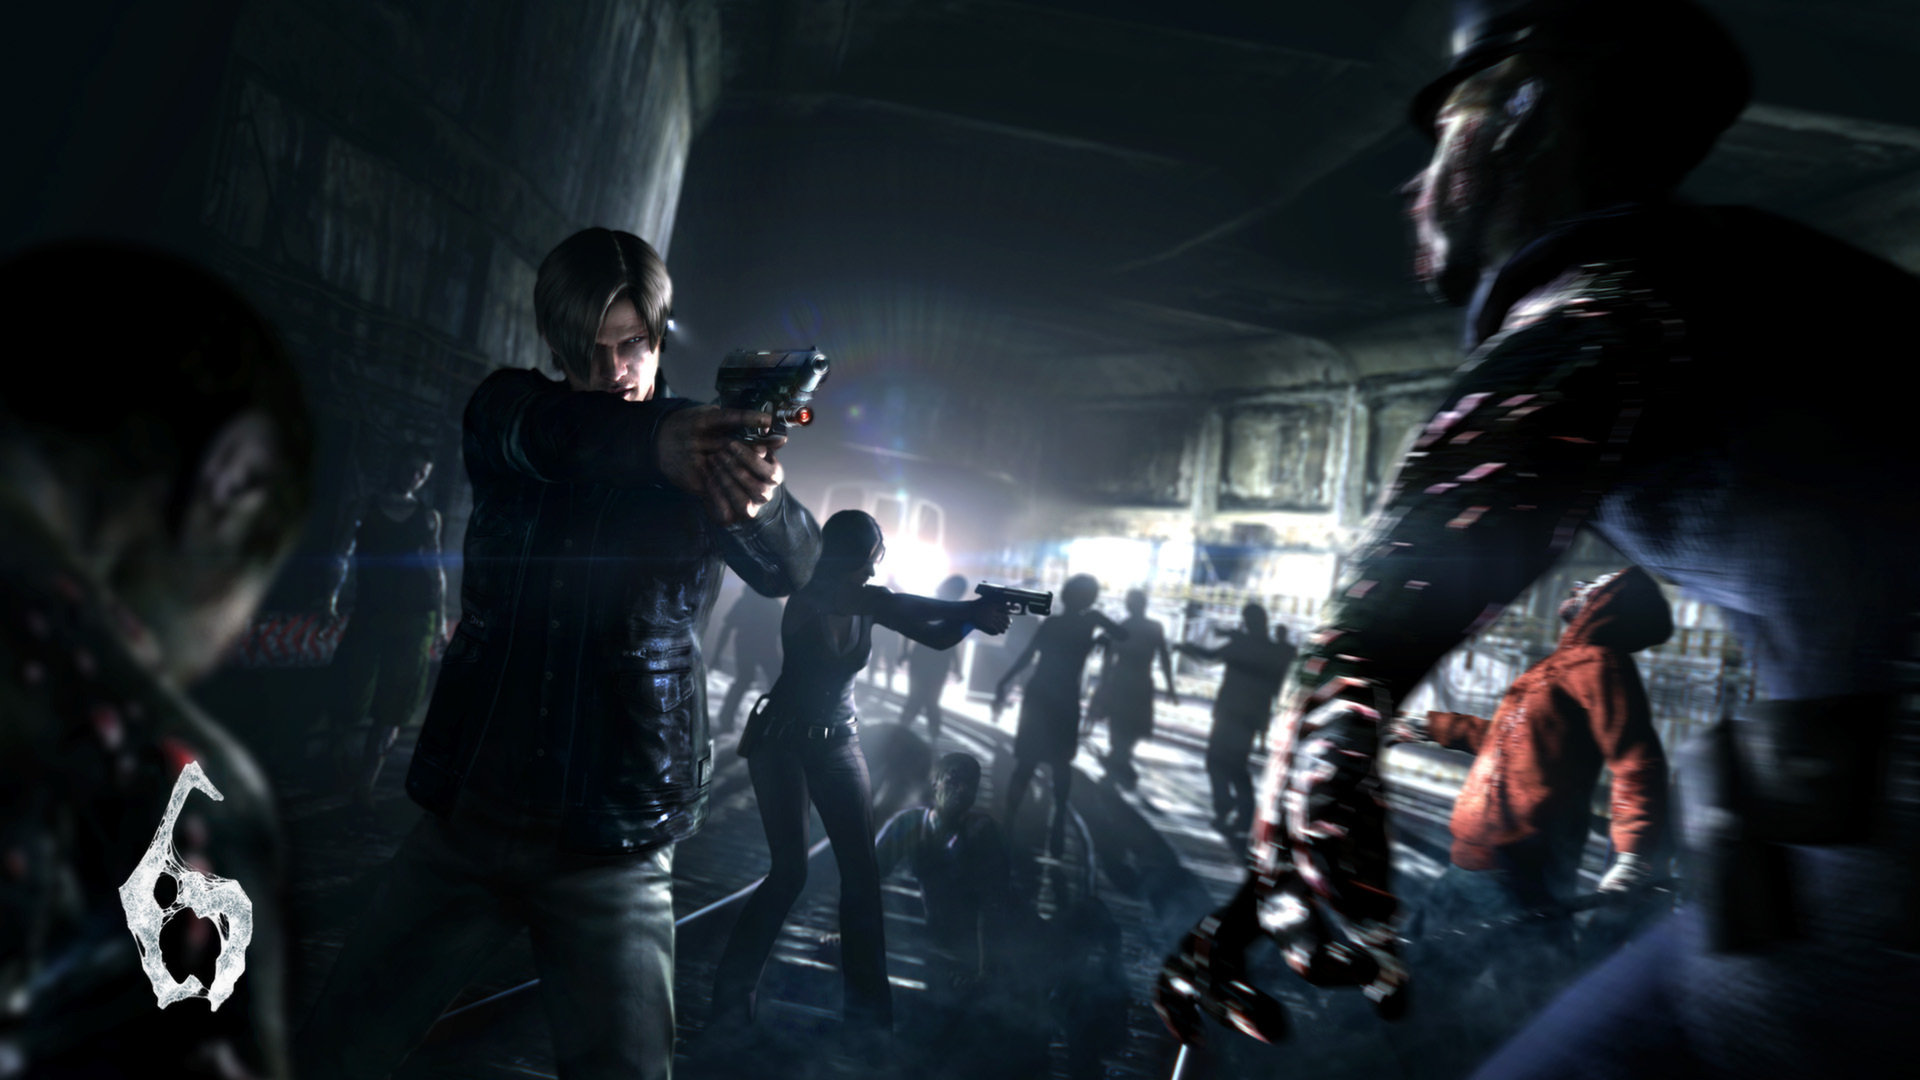 Fantastic Resident Evil Wallpaper 3780